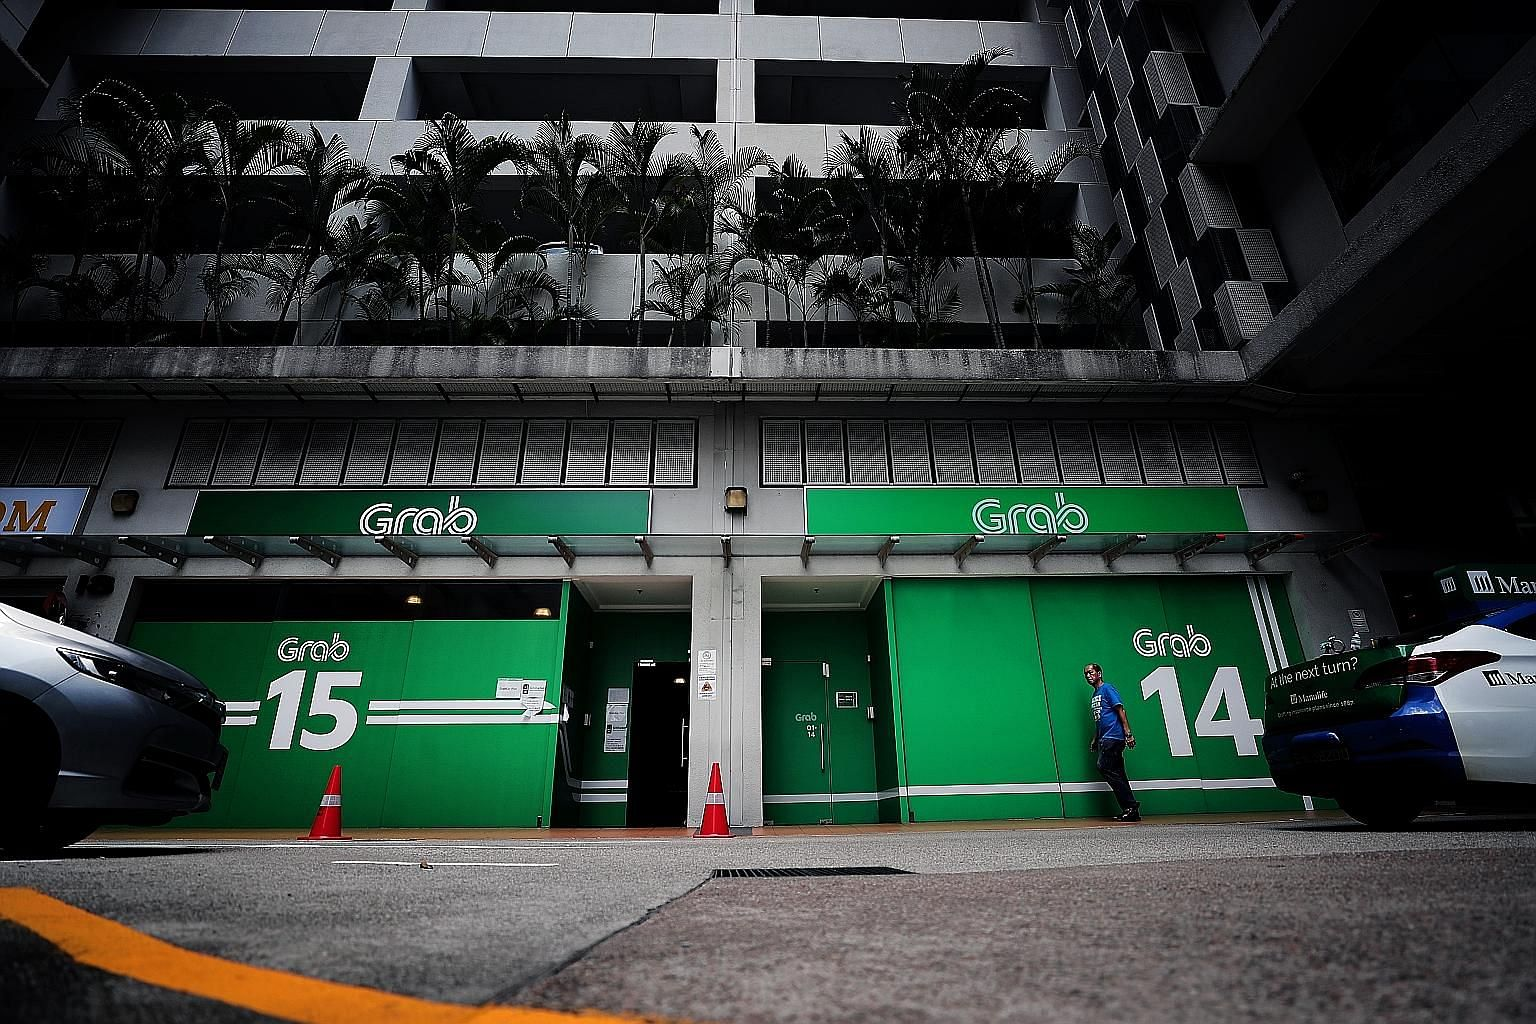 Ride-hailing operators such as Grab and Gojek use artificial intelligence (AI) and big data analysis as the bases of their dynamic pricing. Such use of AI that affects the consumer should be scrutinised by government agencies, particularly for explan